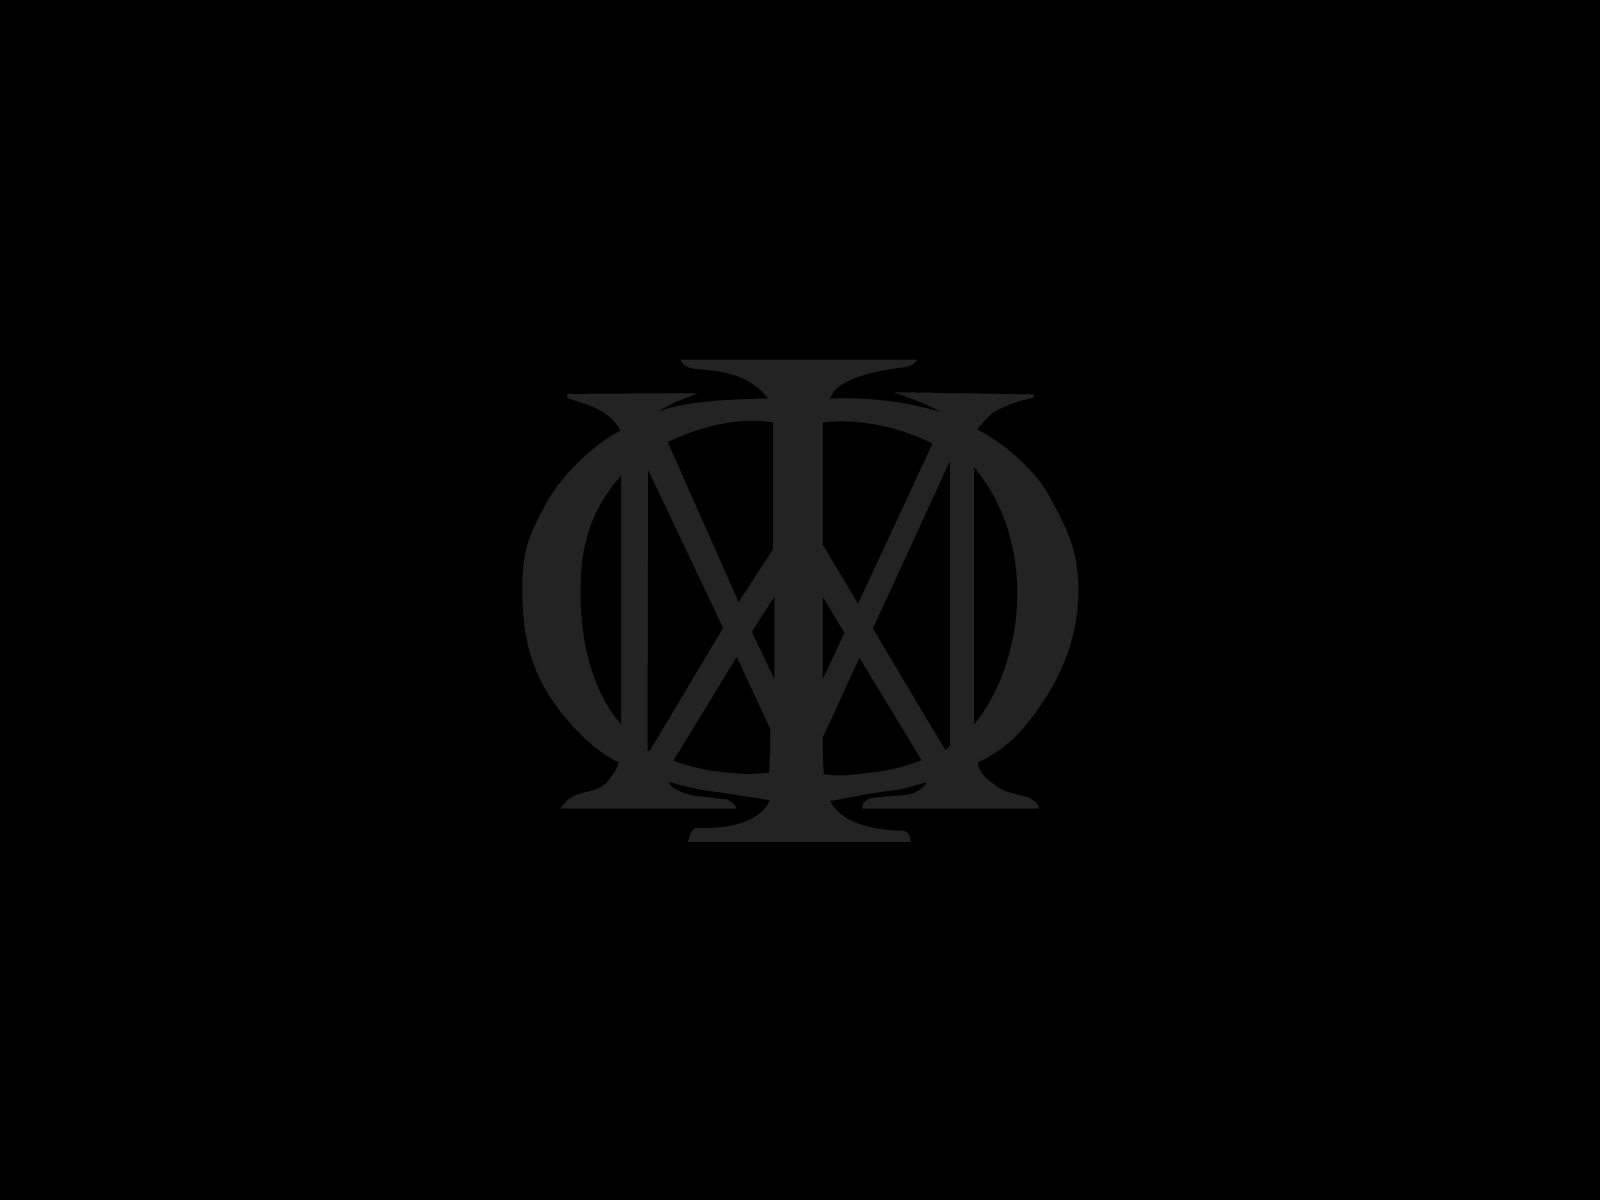 Dream Theater Logo 1600x1200